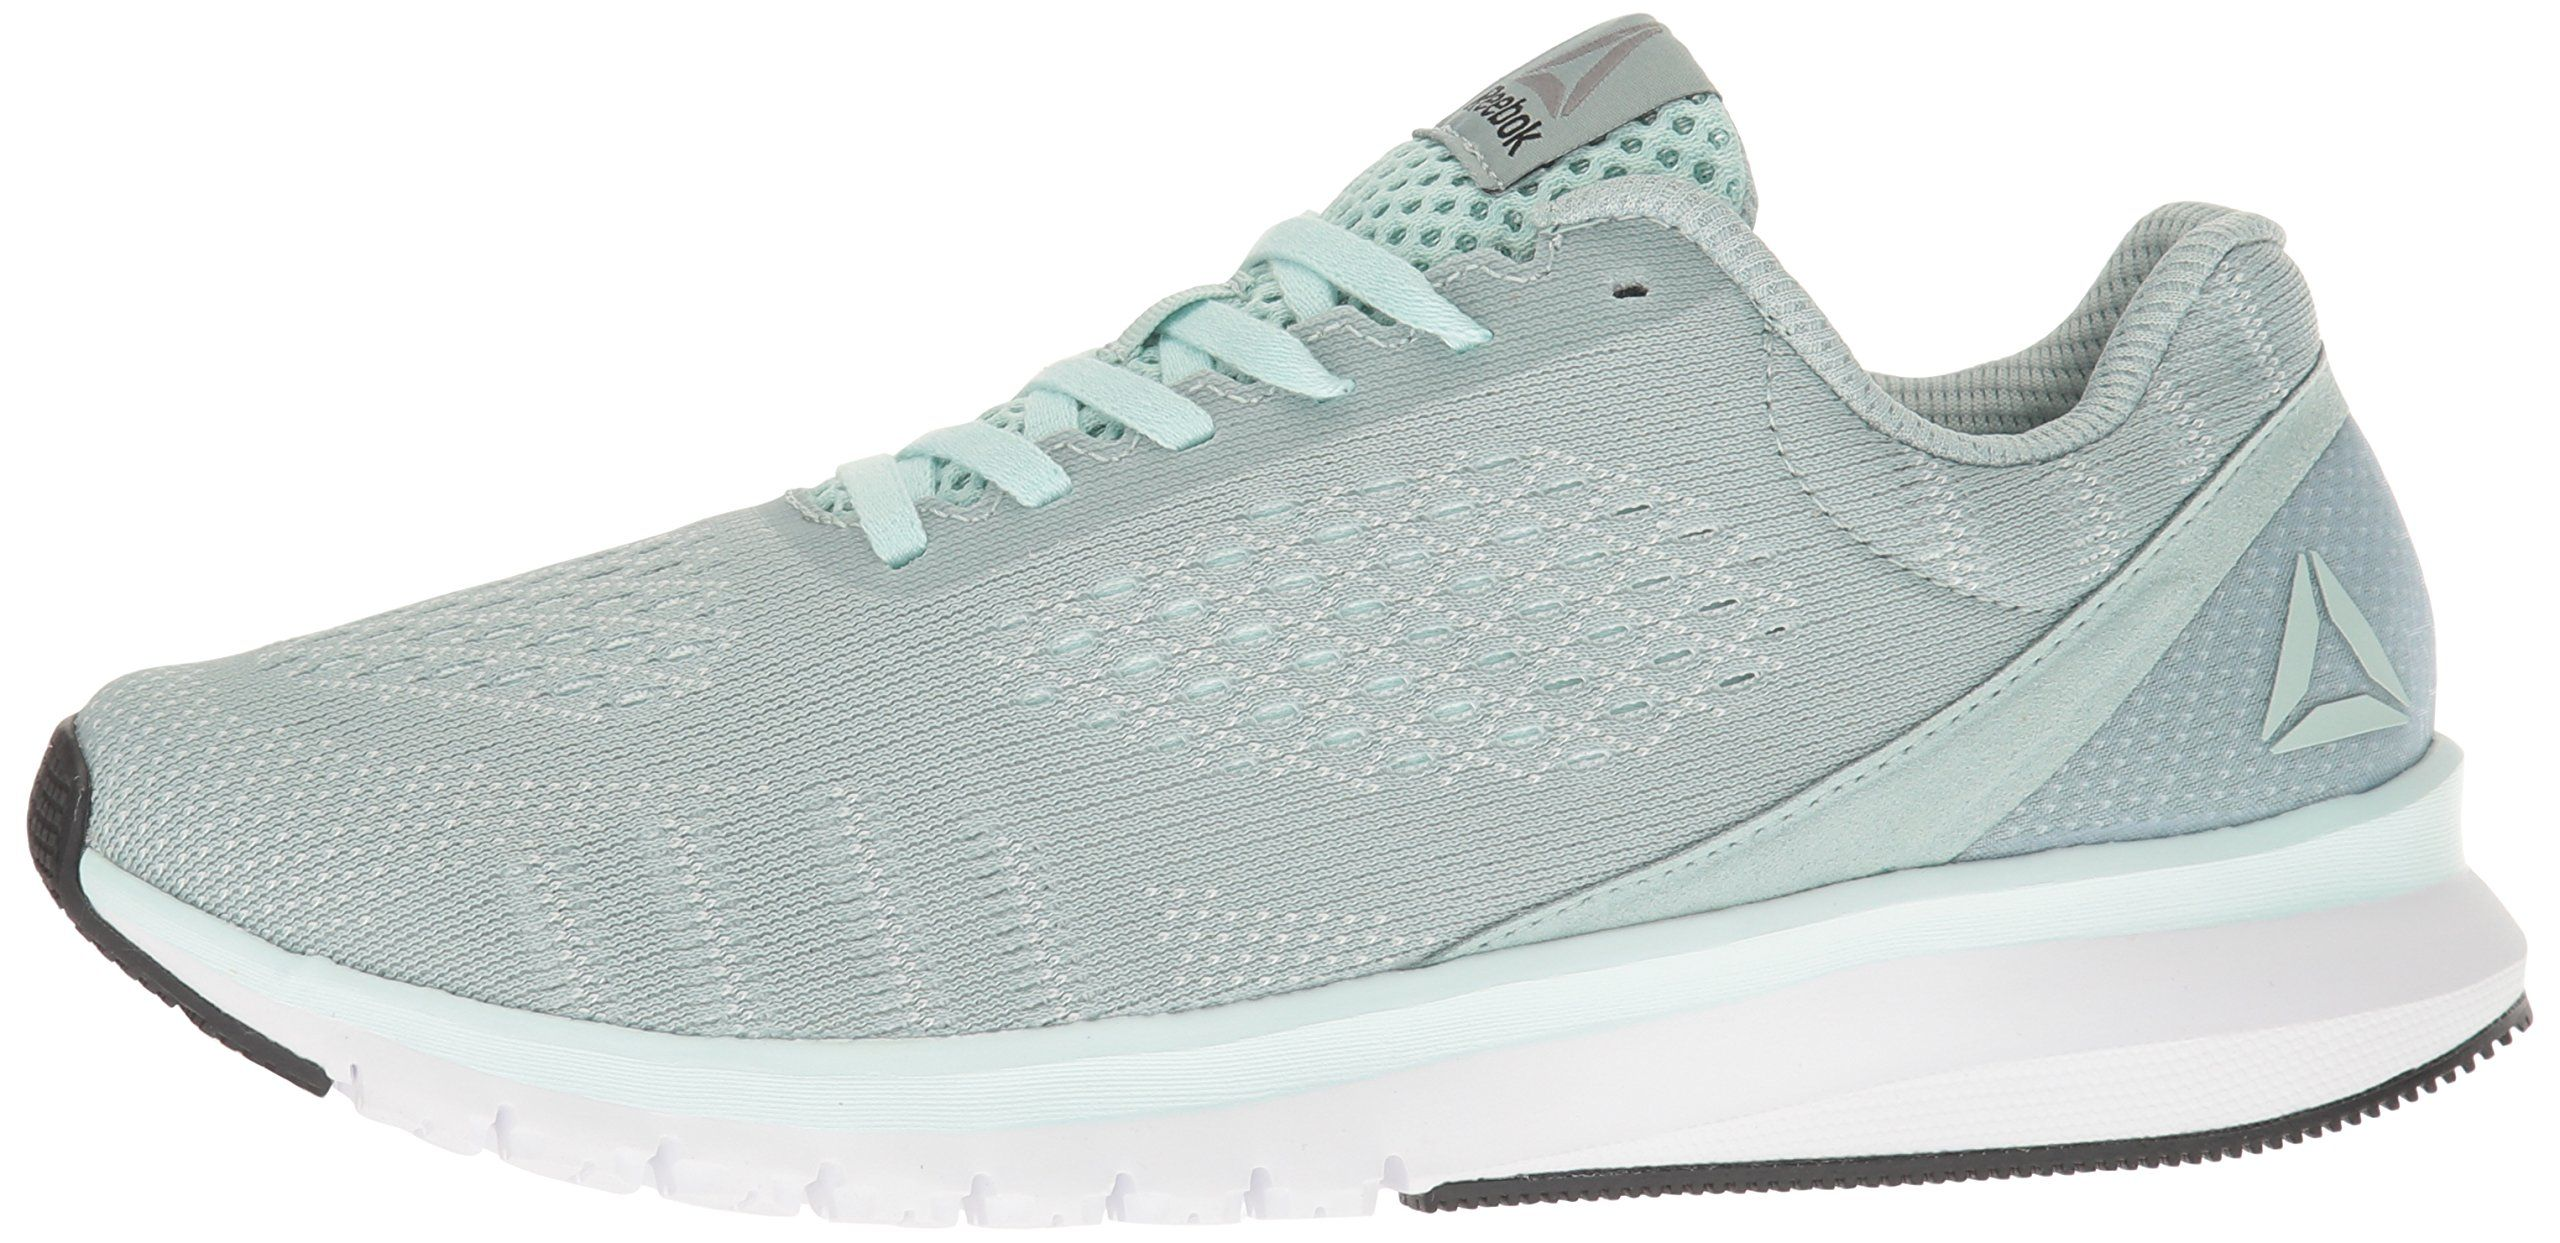 0c2abdc9642 Reebok Womens Print Smooth Ultk Running Shoe Seaside Grey Mist White Coal 9  M US -- Be sure to check out this awesome product. (This is an affiliate  link)   ...